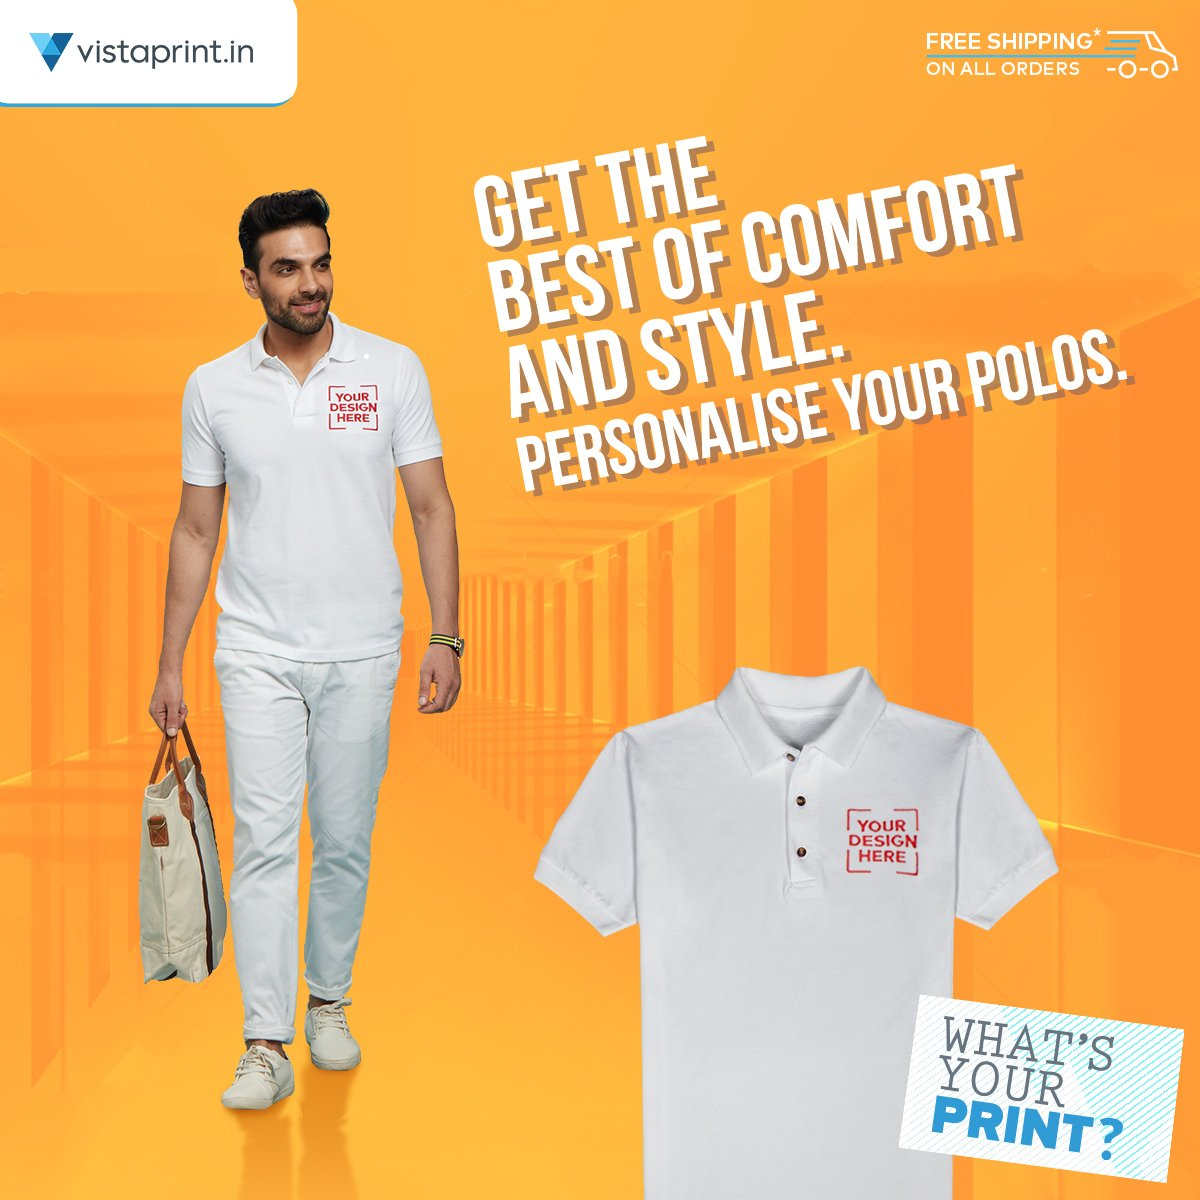 Design t shirt vistaprint - Vistaprint India On Twitter The Classic Polo Tshirt Is A Timeless Garment That Can Be Worn For All Occasions To Tell Us Whatsyourprint